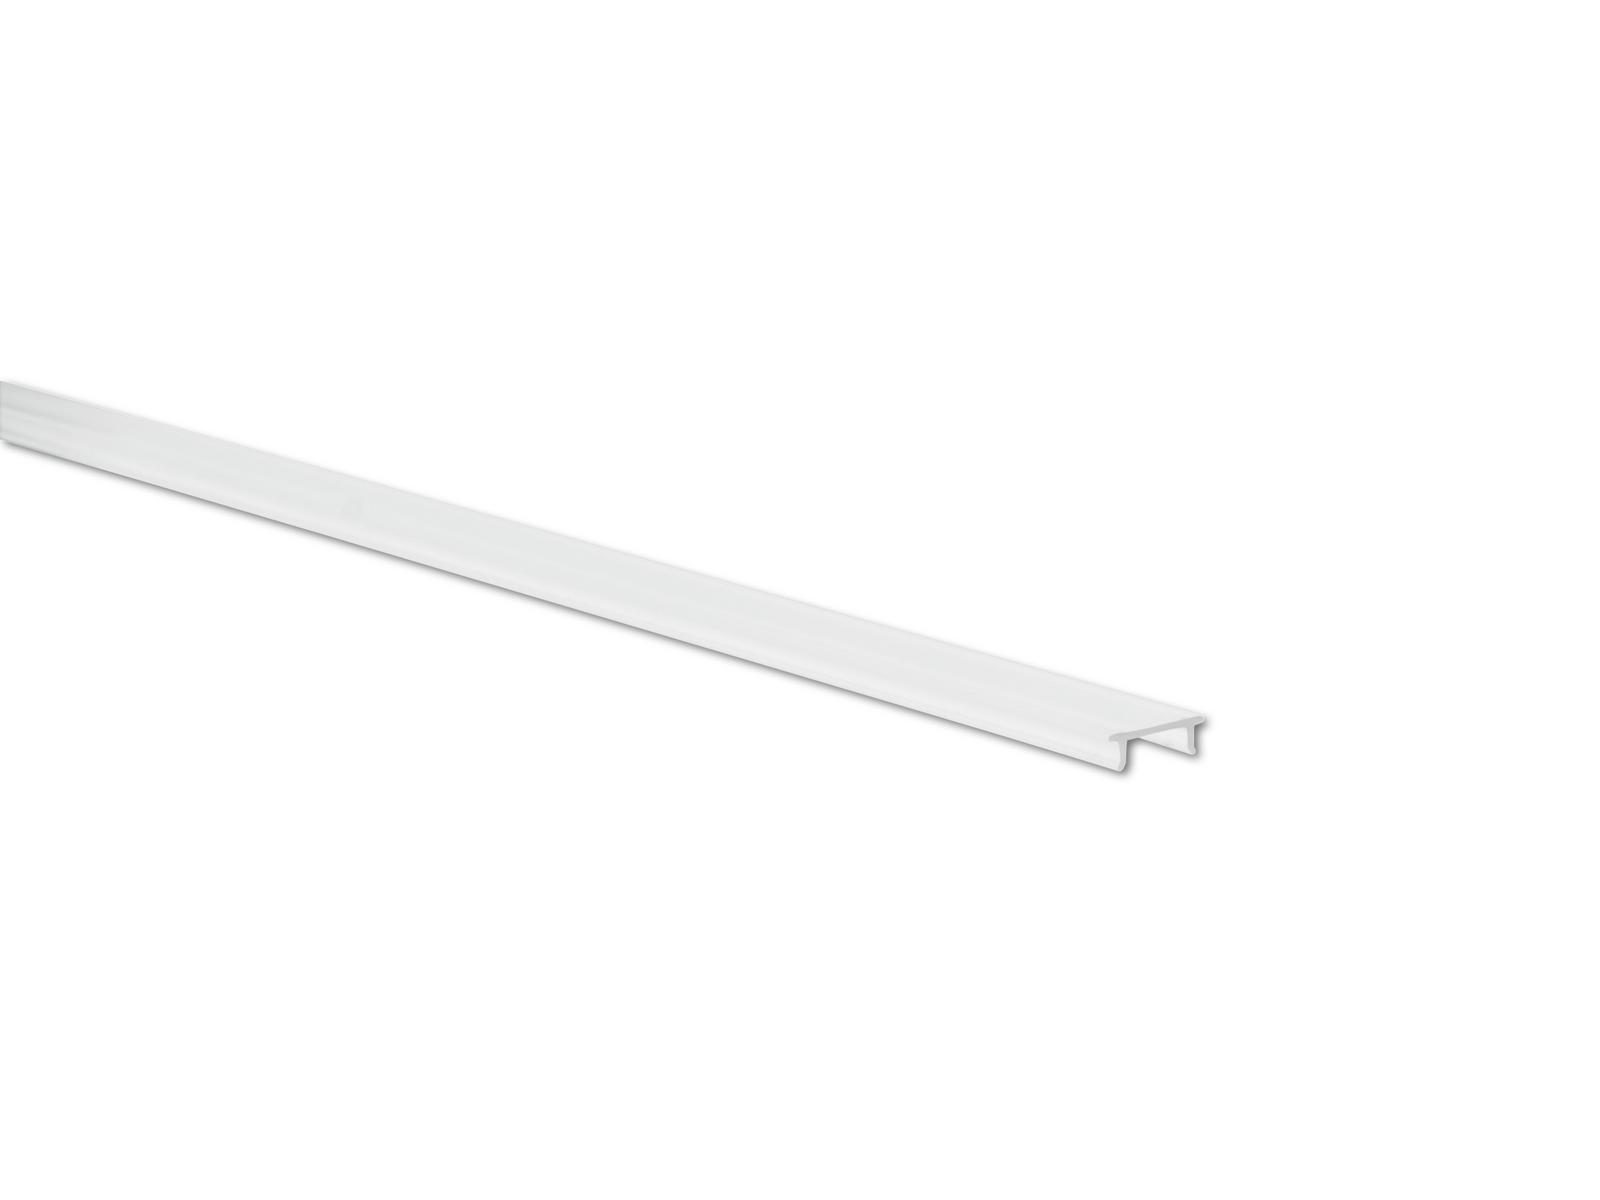 EUROLITE Deckel für LED Strip Profile clear 4m